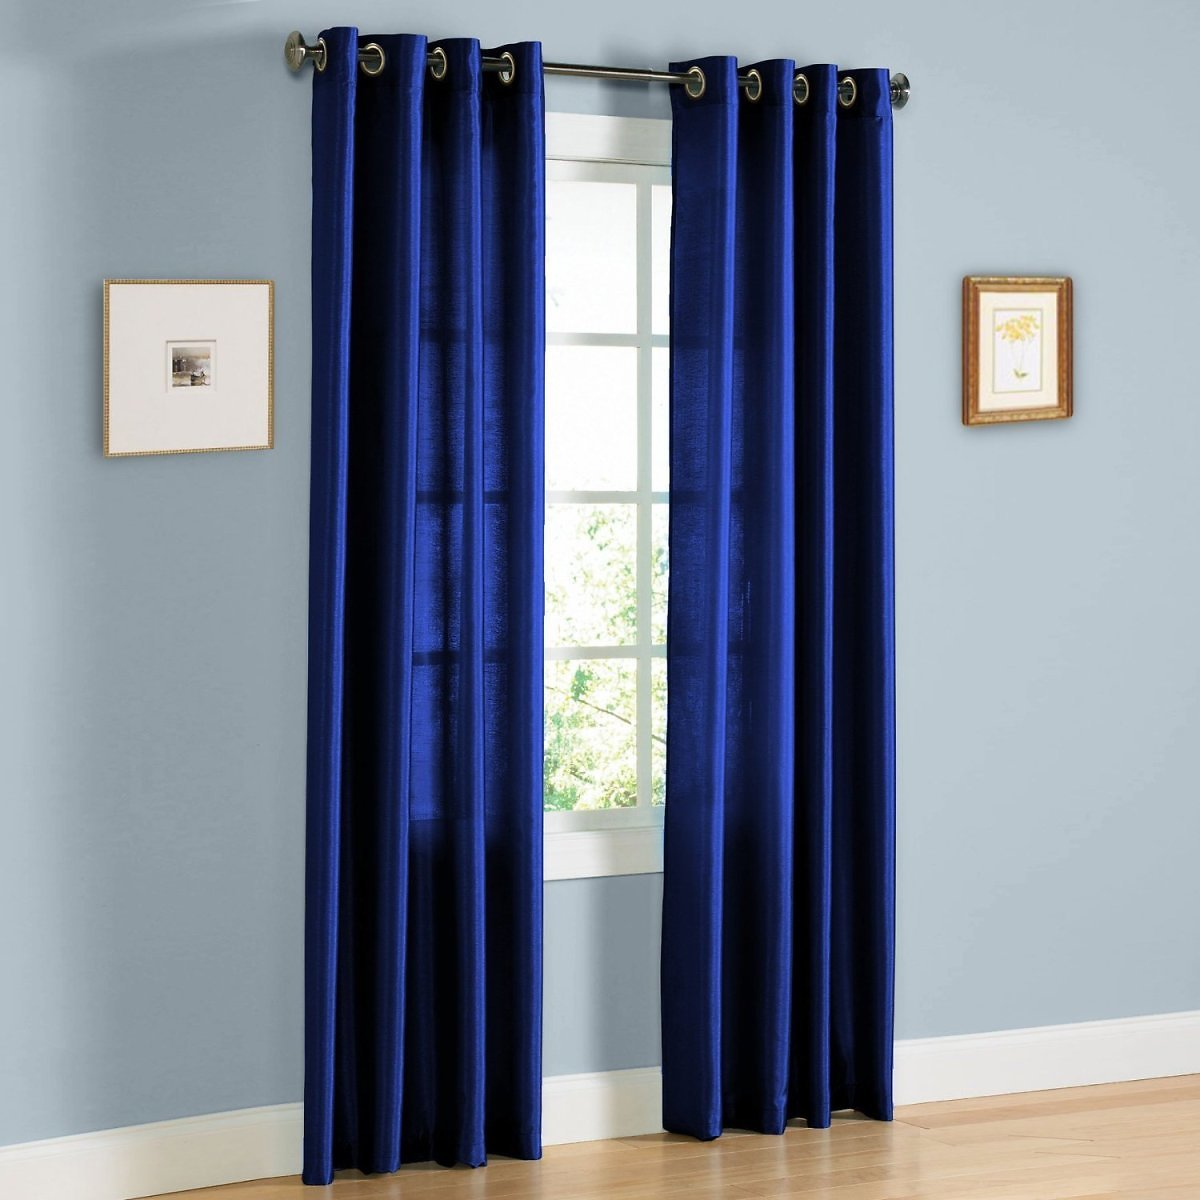 2 PANEL MIRA SOLID ROYAL BLUE SEMI SHEER WINDOW FAUX SILK ANTIQUE BRONZE GROMMETS CURTAIN DRAPES 55 WIDE X 84